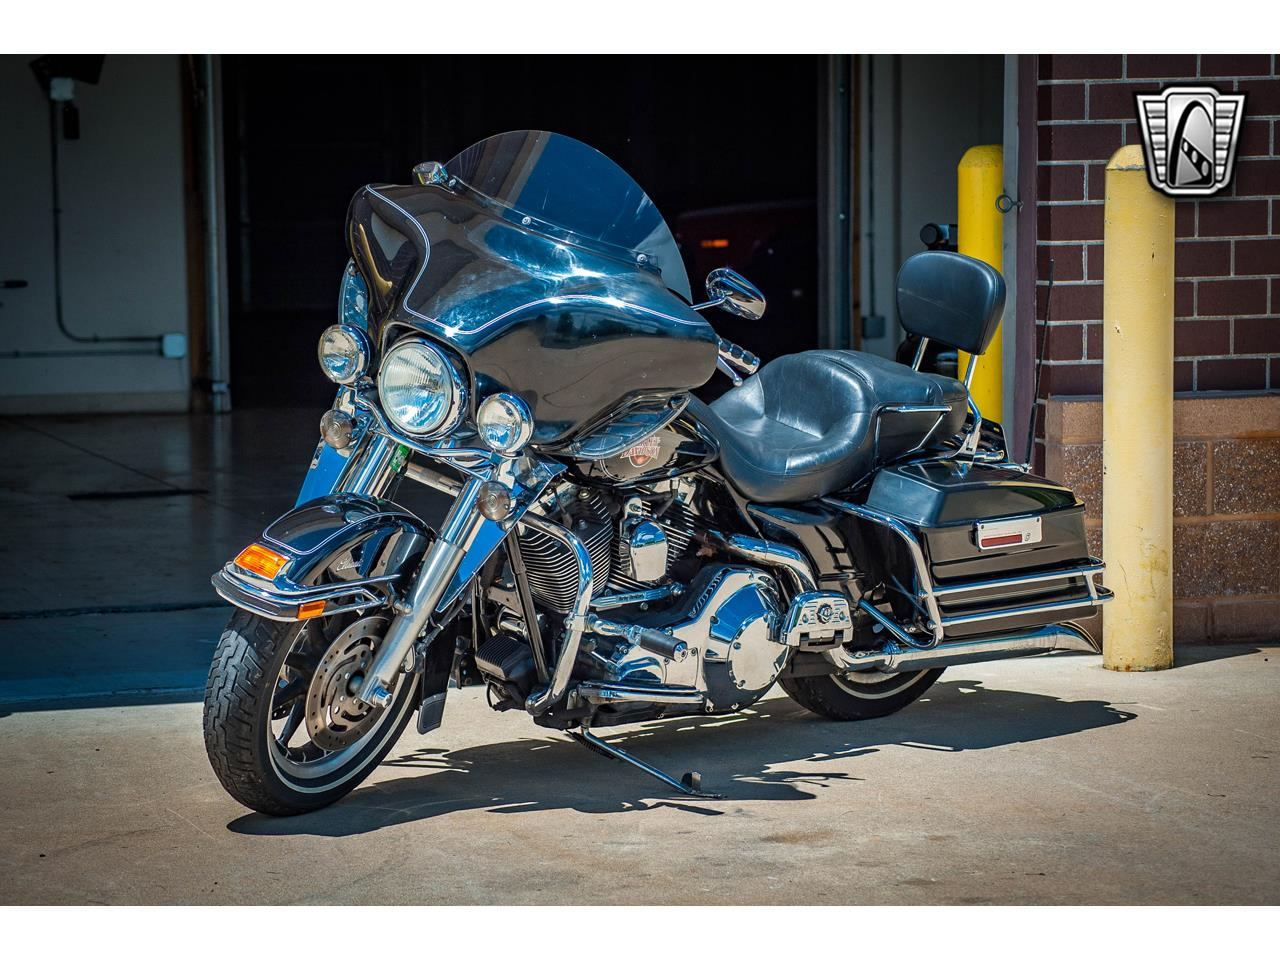 2004 Harley-Davidson Motorcycle for sale in O'Fallon, IL – photo 41